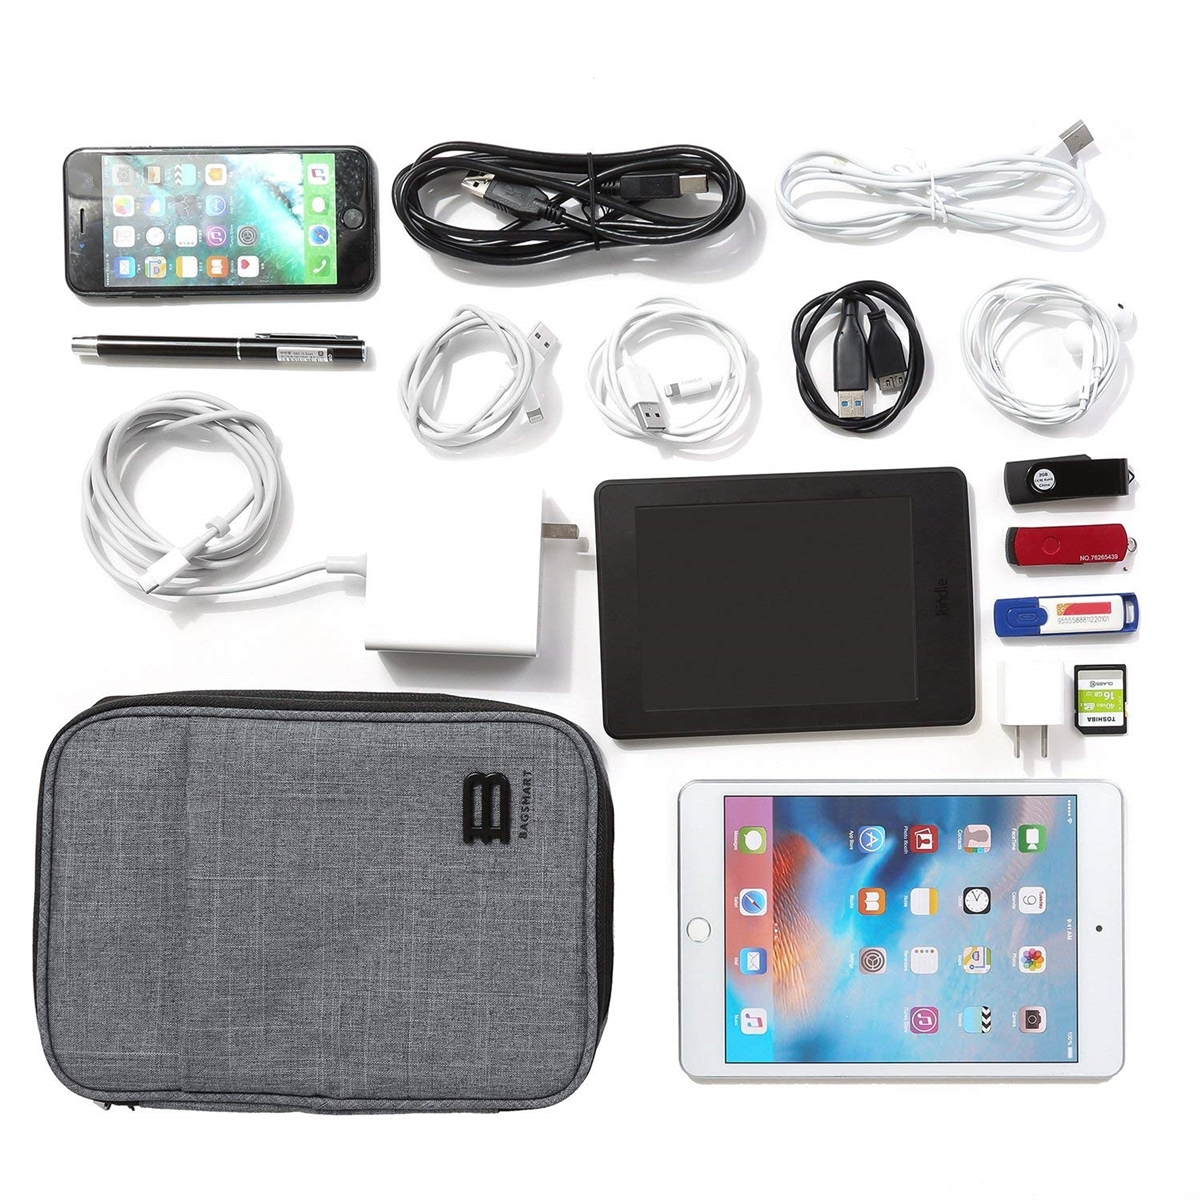 Charger Ipad Mini Tablet Waterproof Travel Electronic Accessories Case Portable Double Layer Cable Storage Bag for Cord SD Card Phone Flash Drive Power Bank Matein Electronics Organizer Black